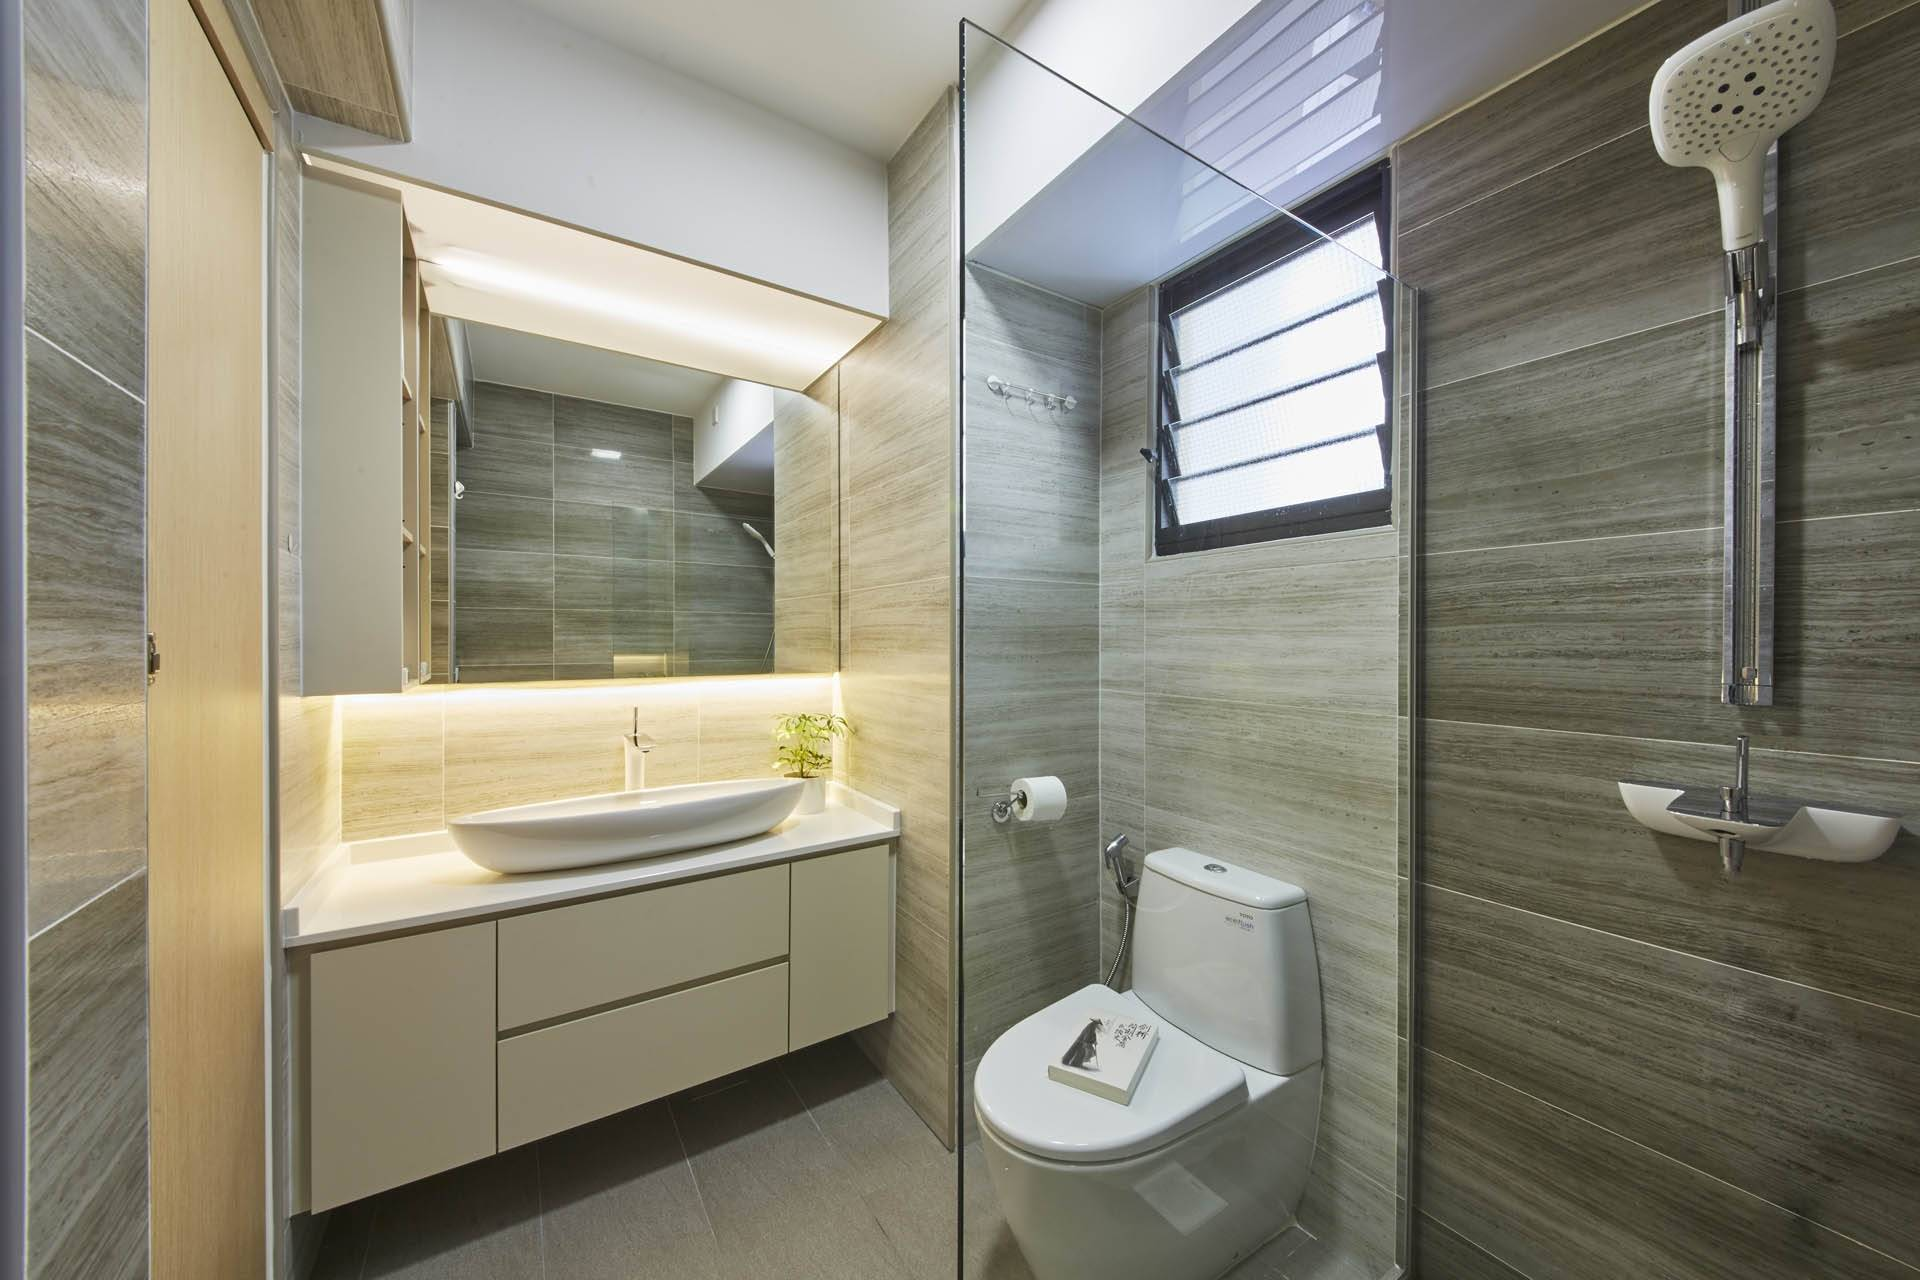 Hdb bathroom design for Room design with bathroom